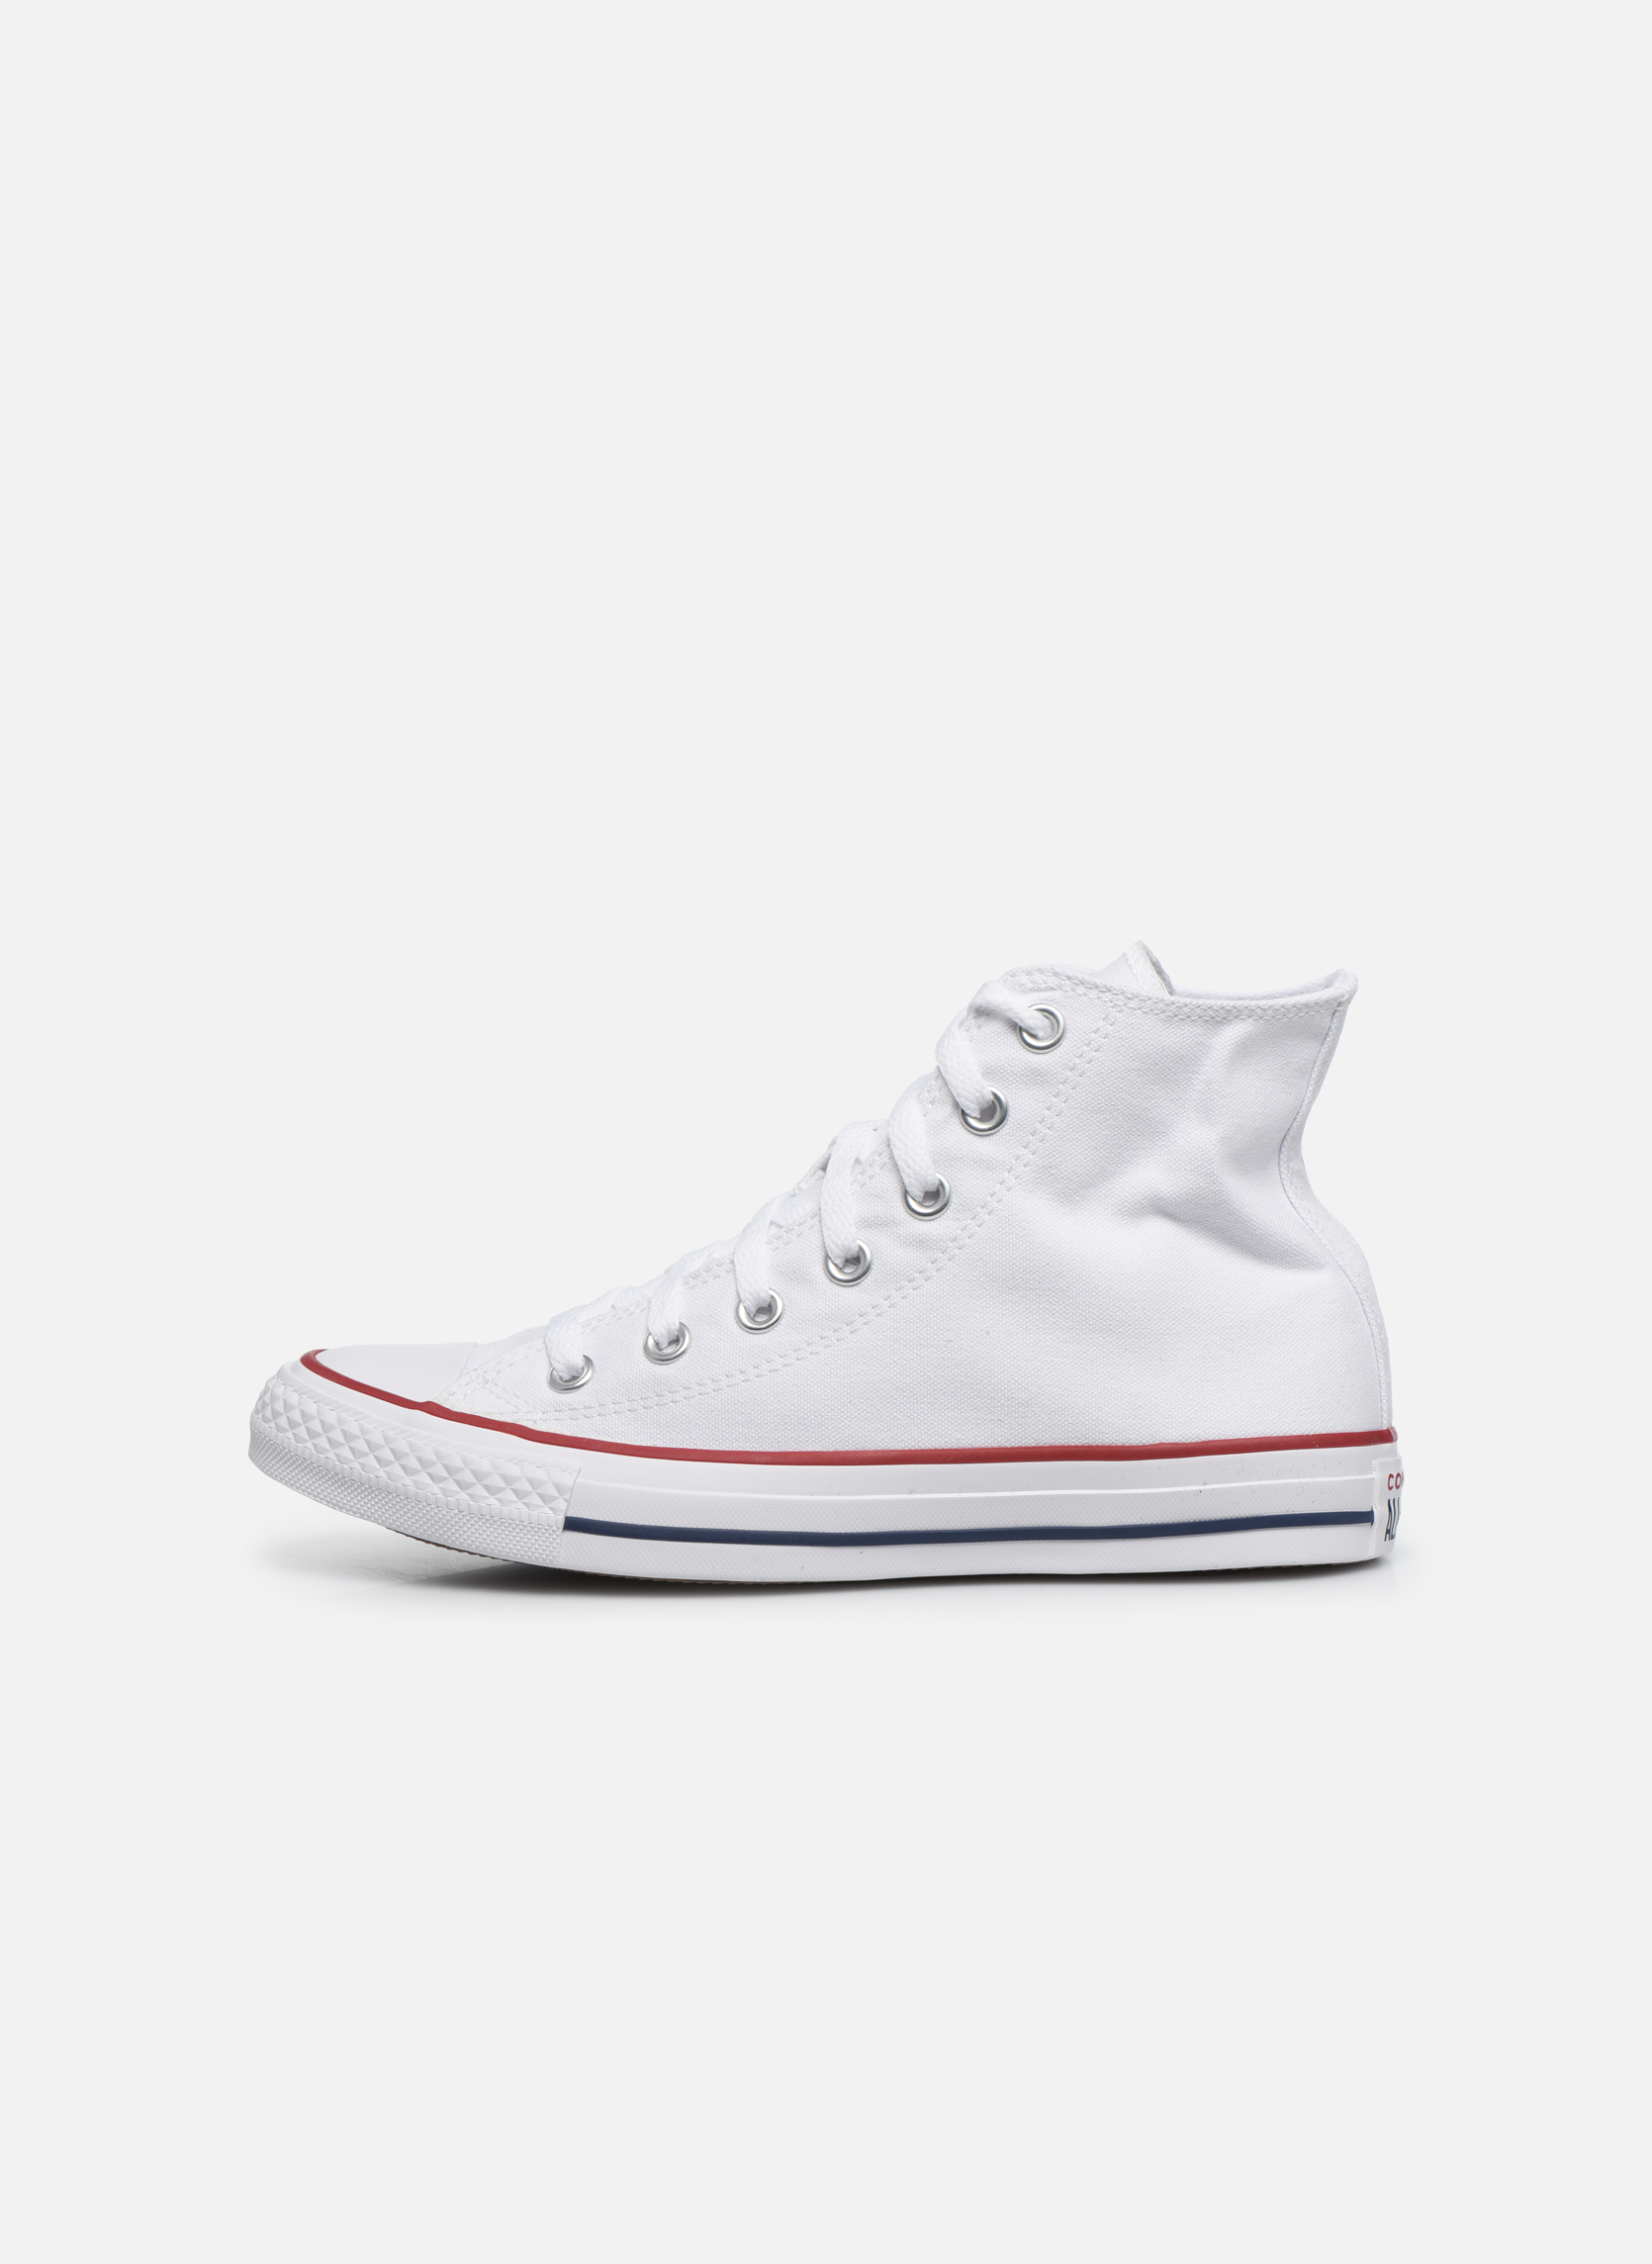 Chuck Taylor All Star white